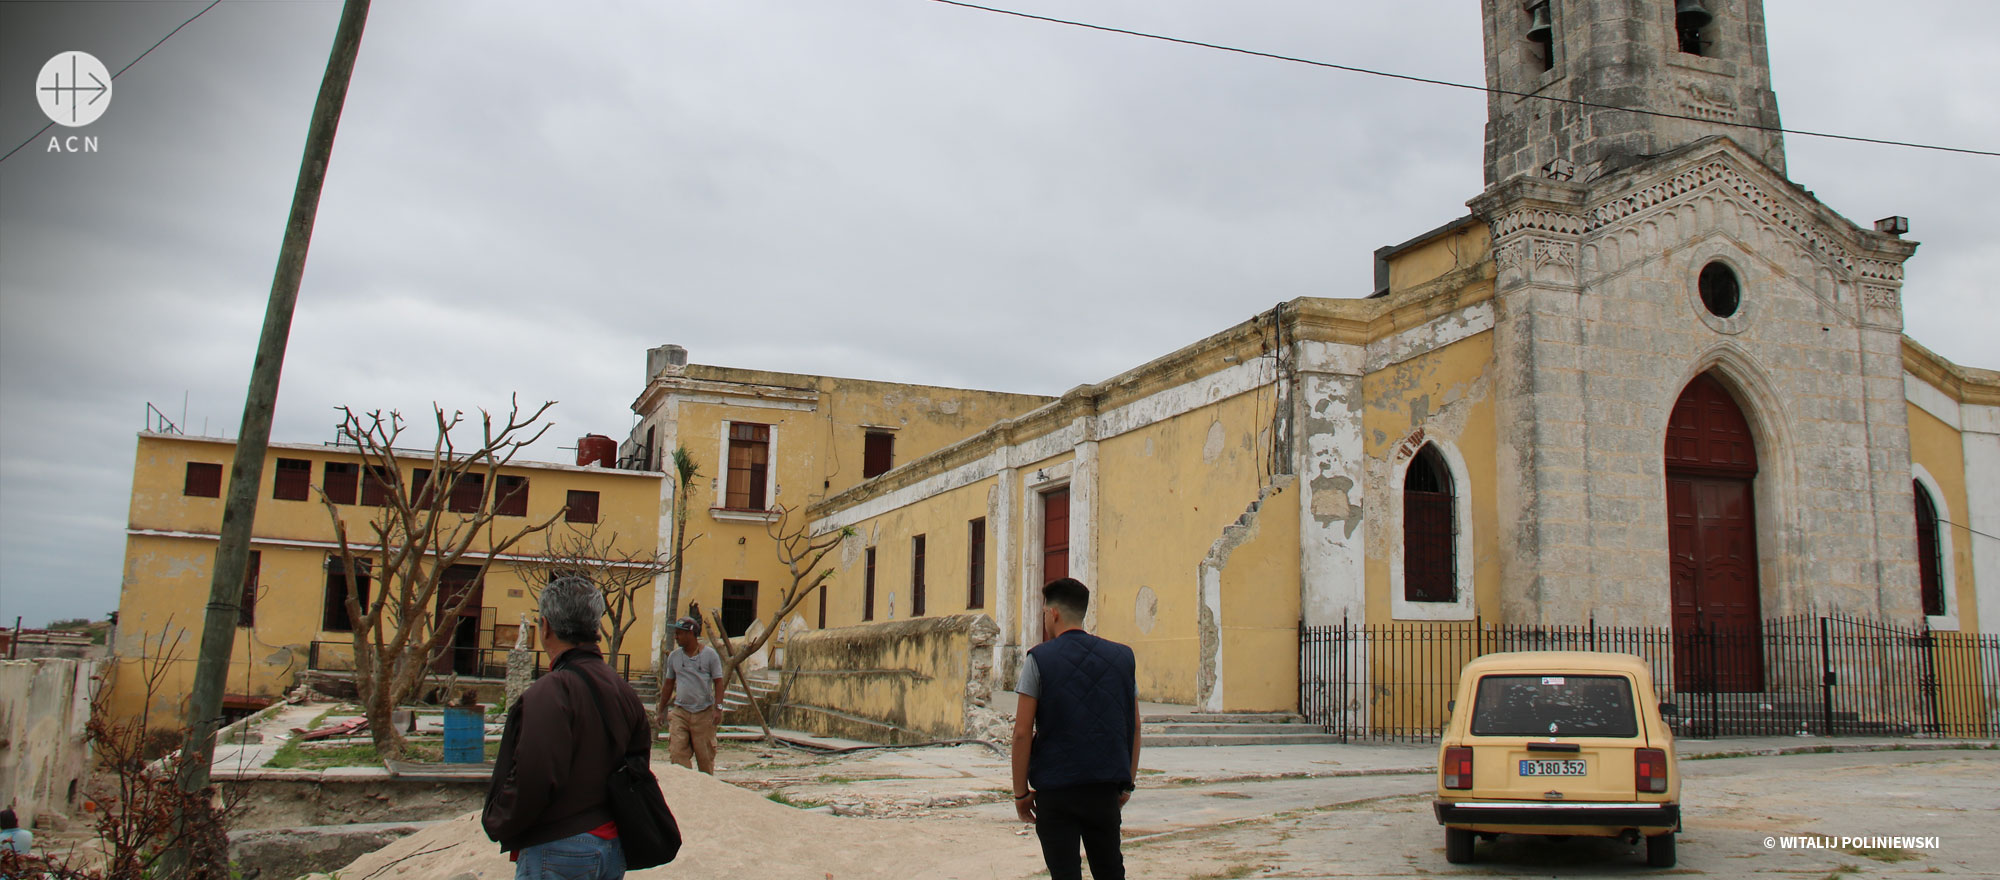 ACN Feature Story—Cuba